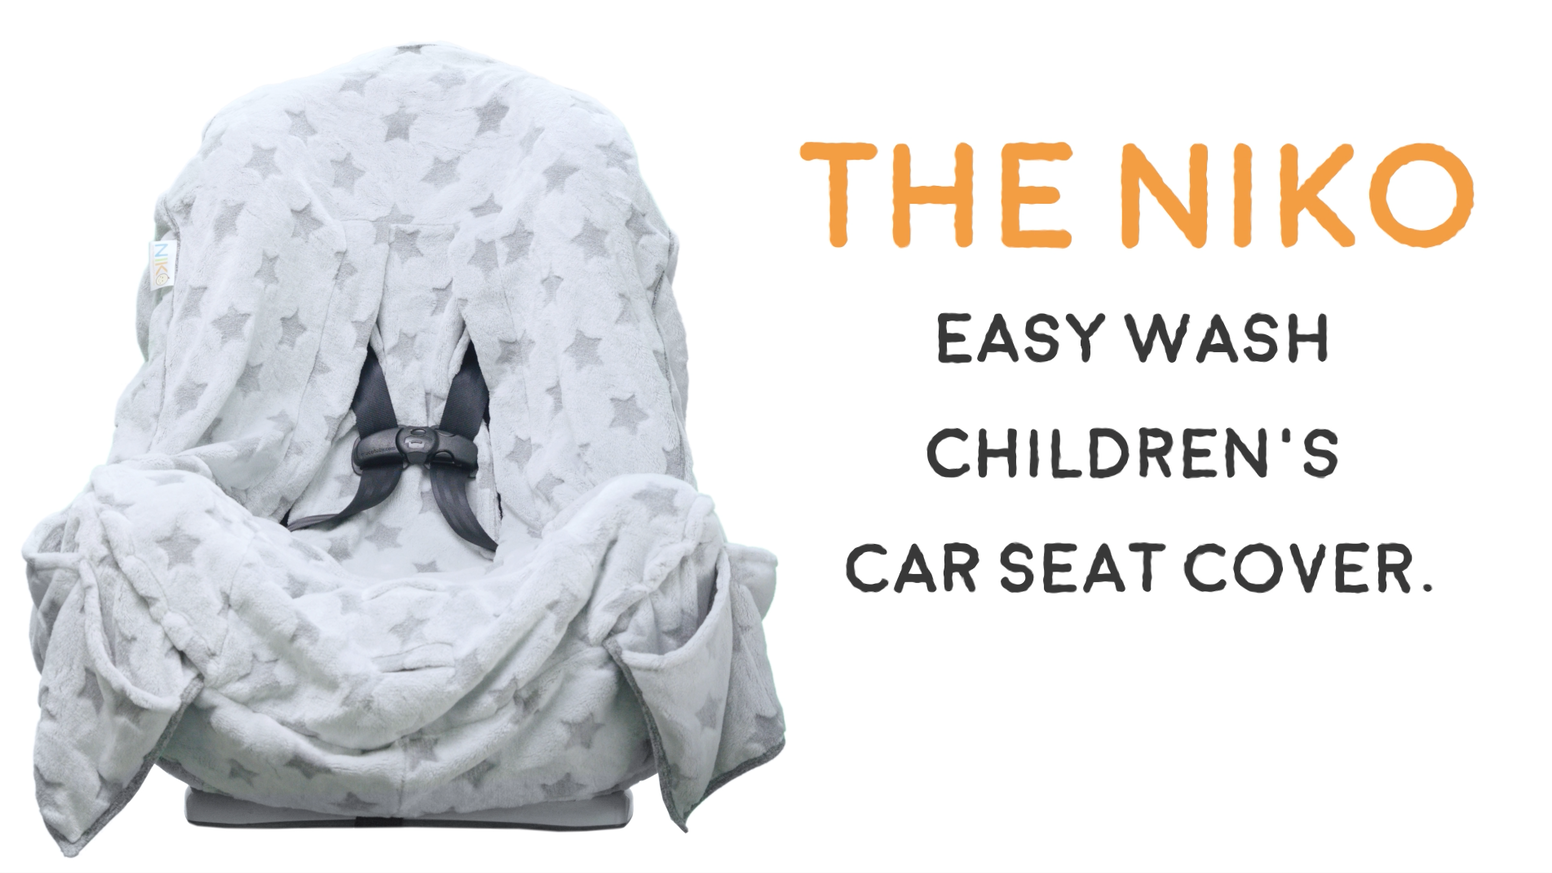 Childrens Car Seat Cover Barf Poo Pee Food Mud And Mold They Create A Germ